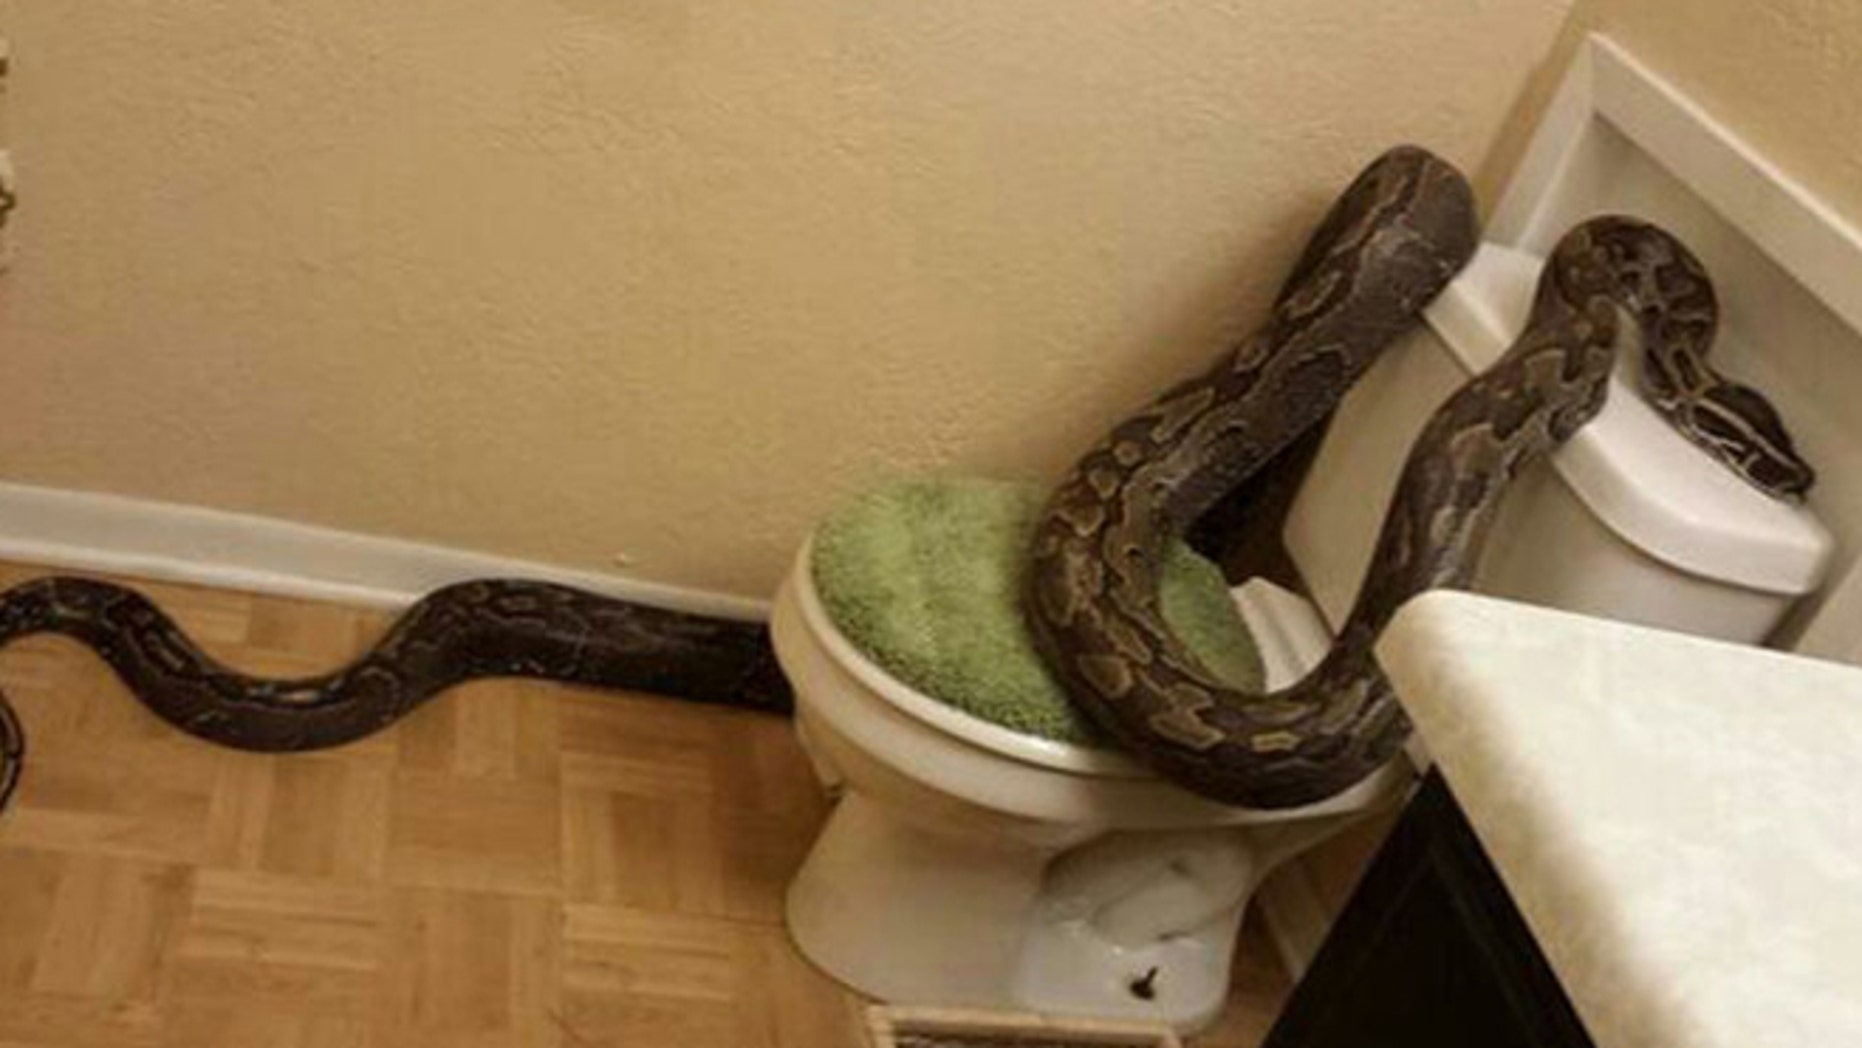 A 12-foot python has been returned to its owner after a slithery stop at a Central Texas home where a woman earlier bathed her pet guinea pigs.